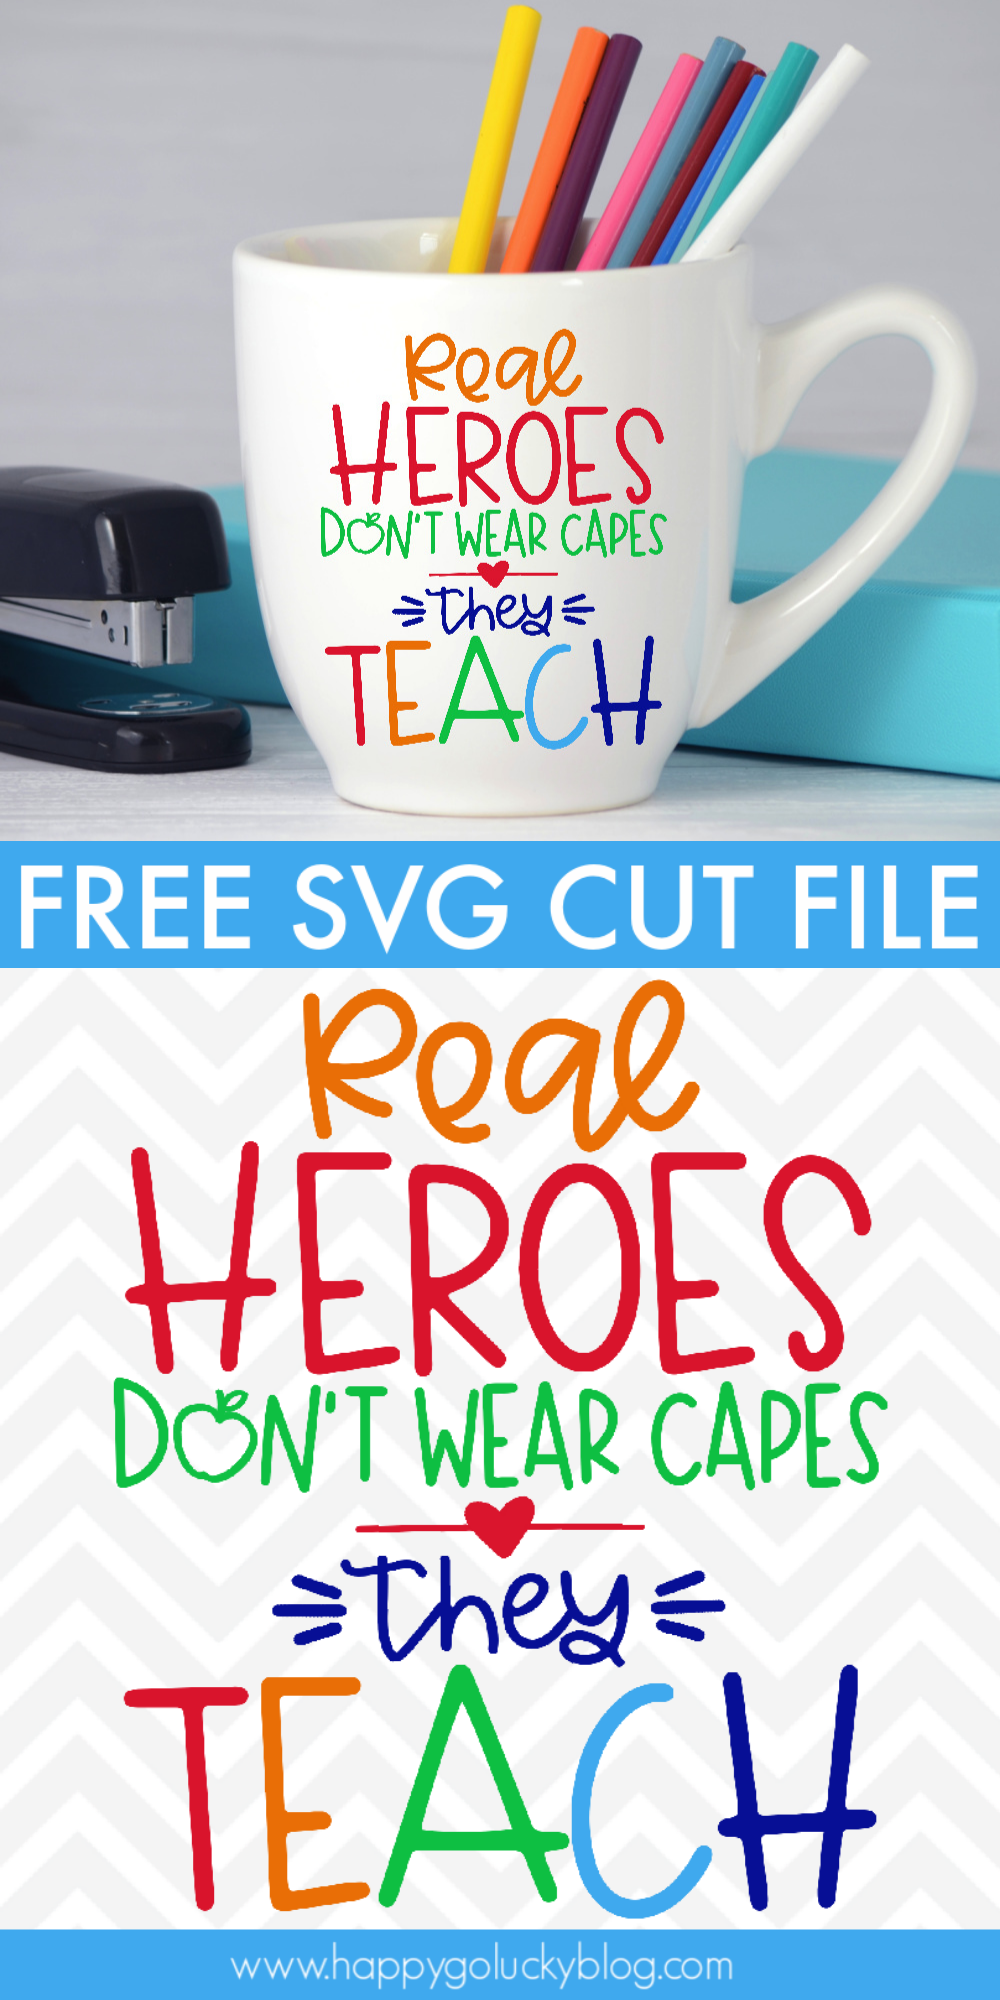 Real Heroes Teach Free SVG Happy Go Lucky